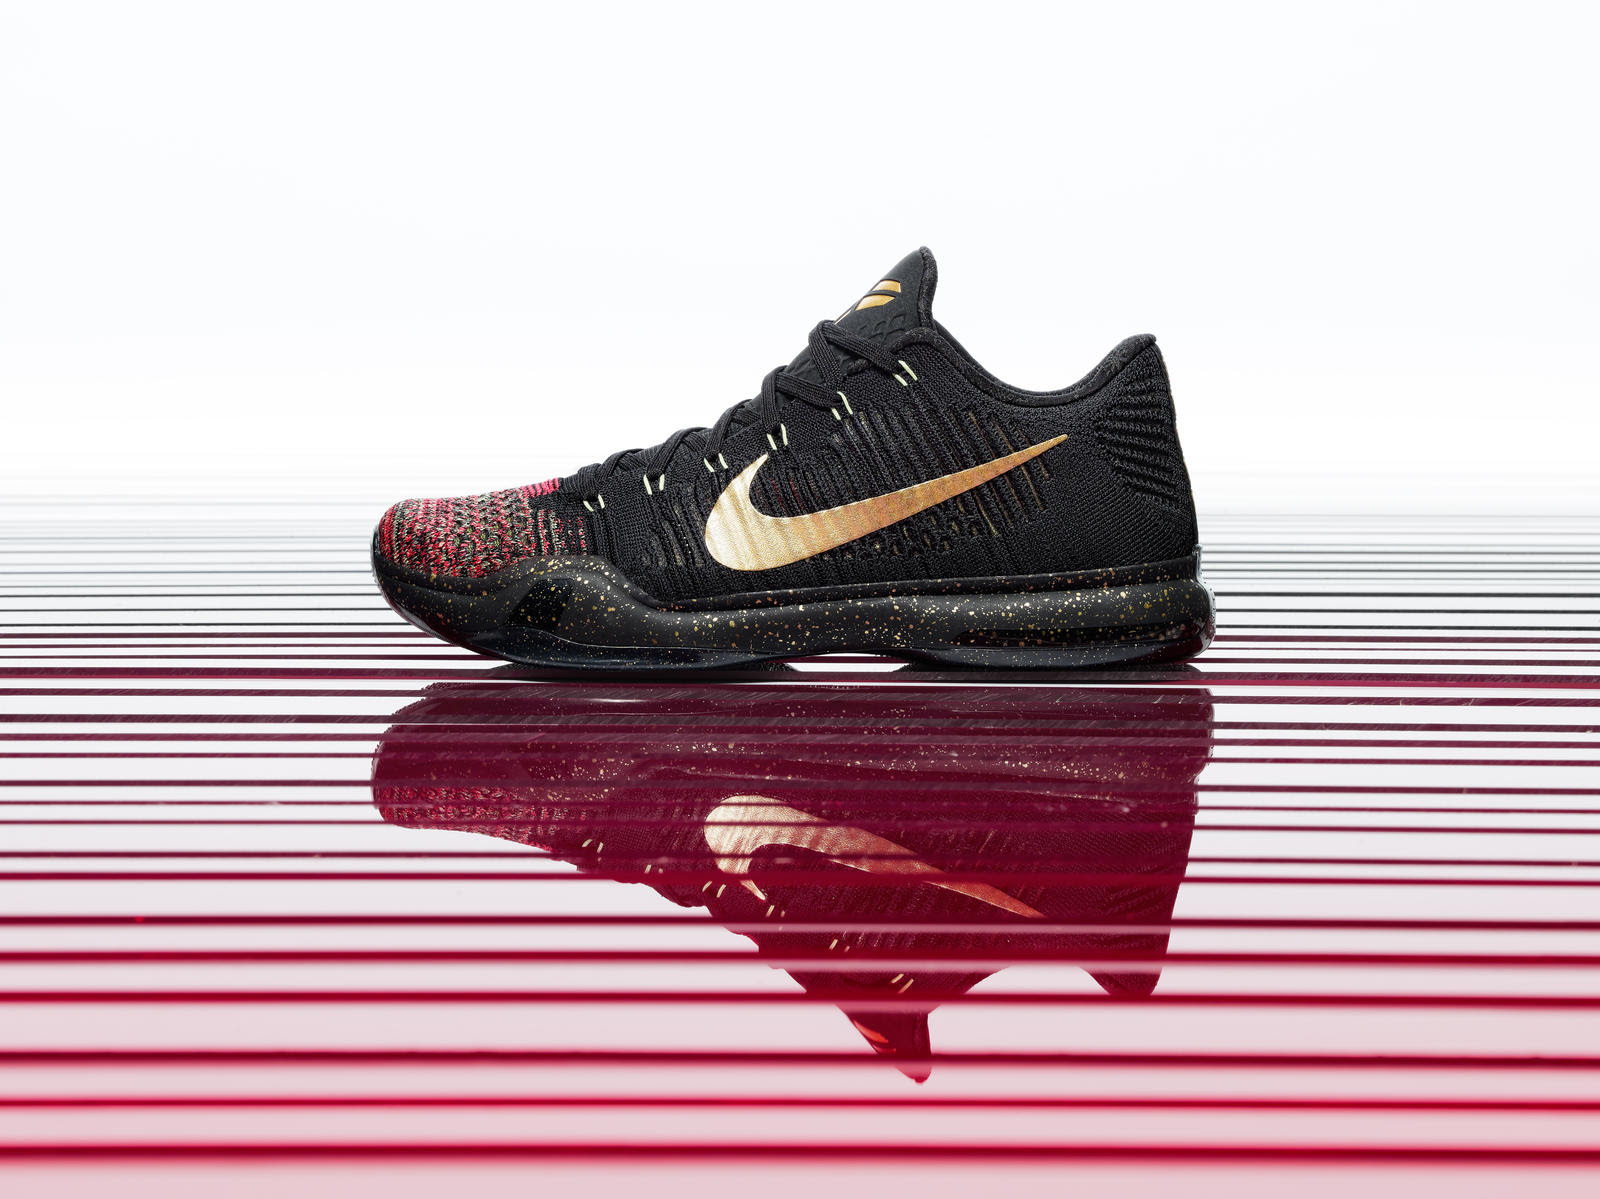 7938a5e630f Powcast Media Network Group  SNEAKERHEADS WILL DROOL OVER  THE 2015 ...